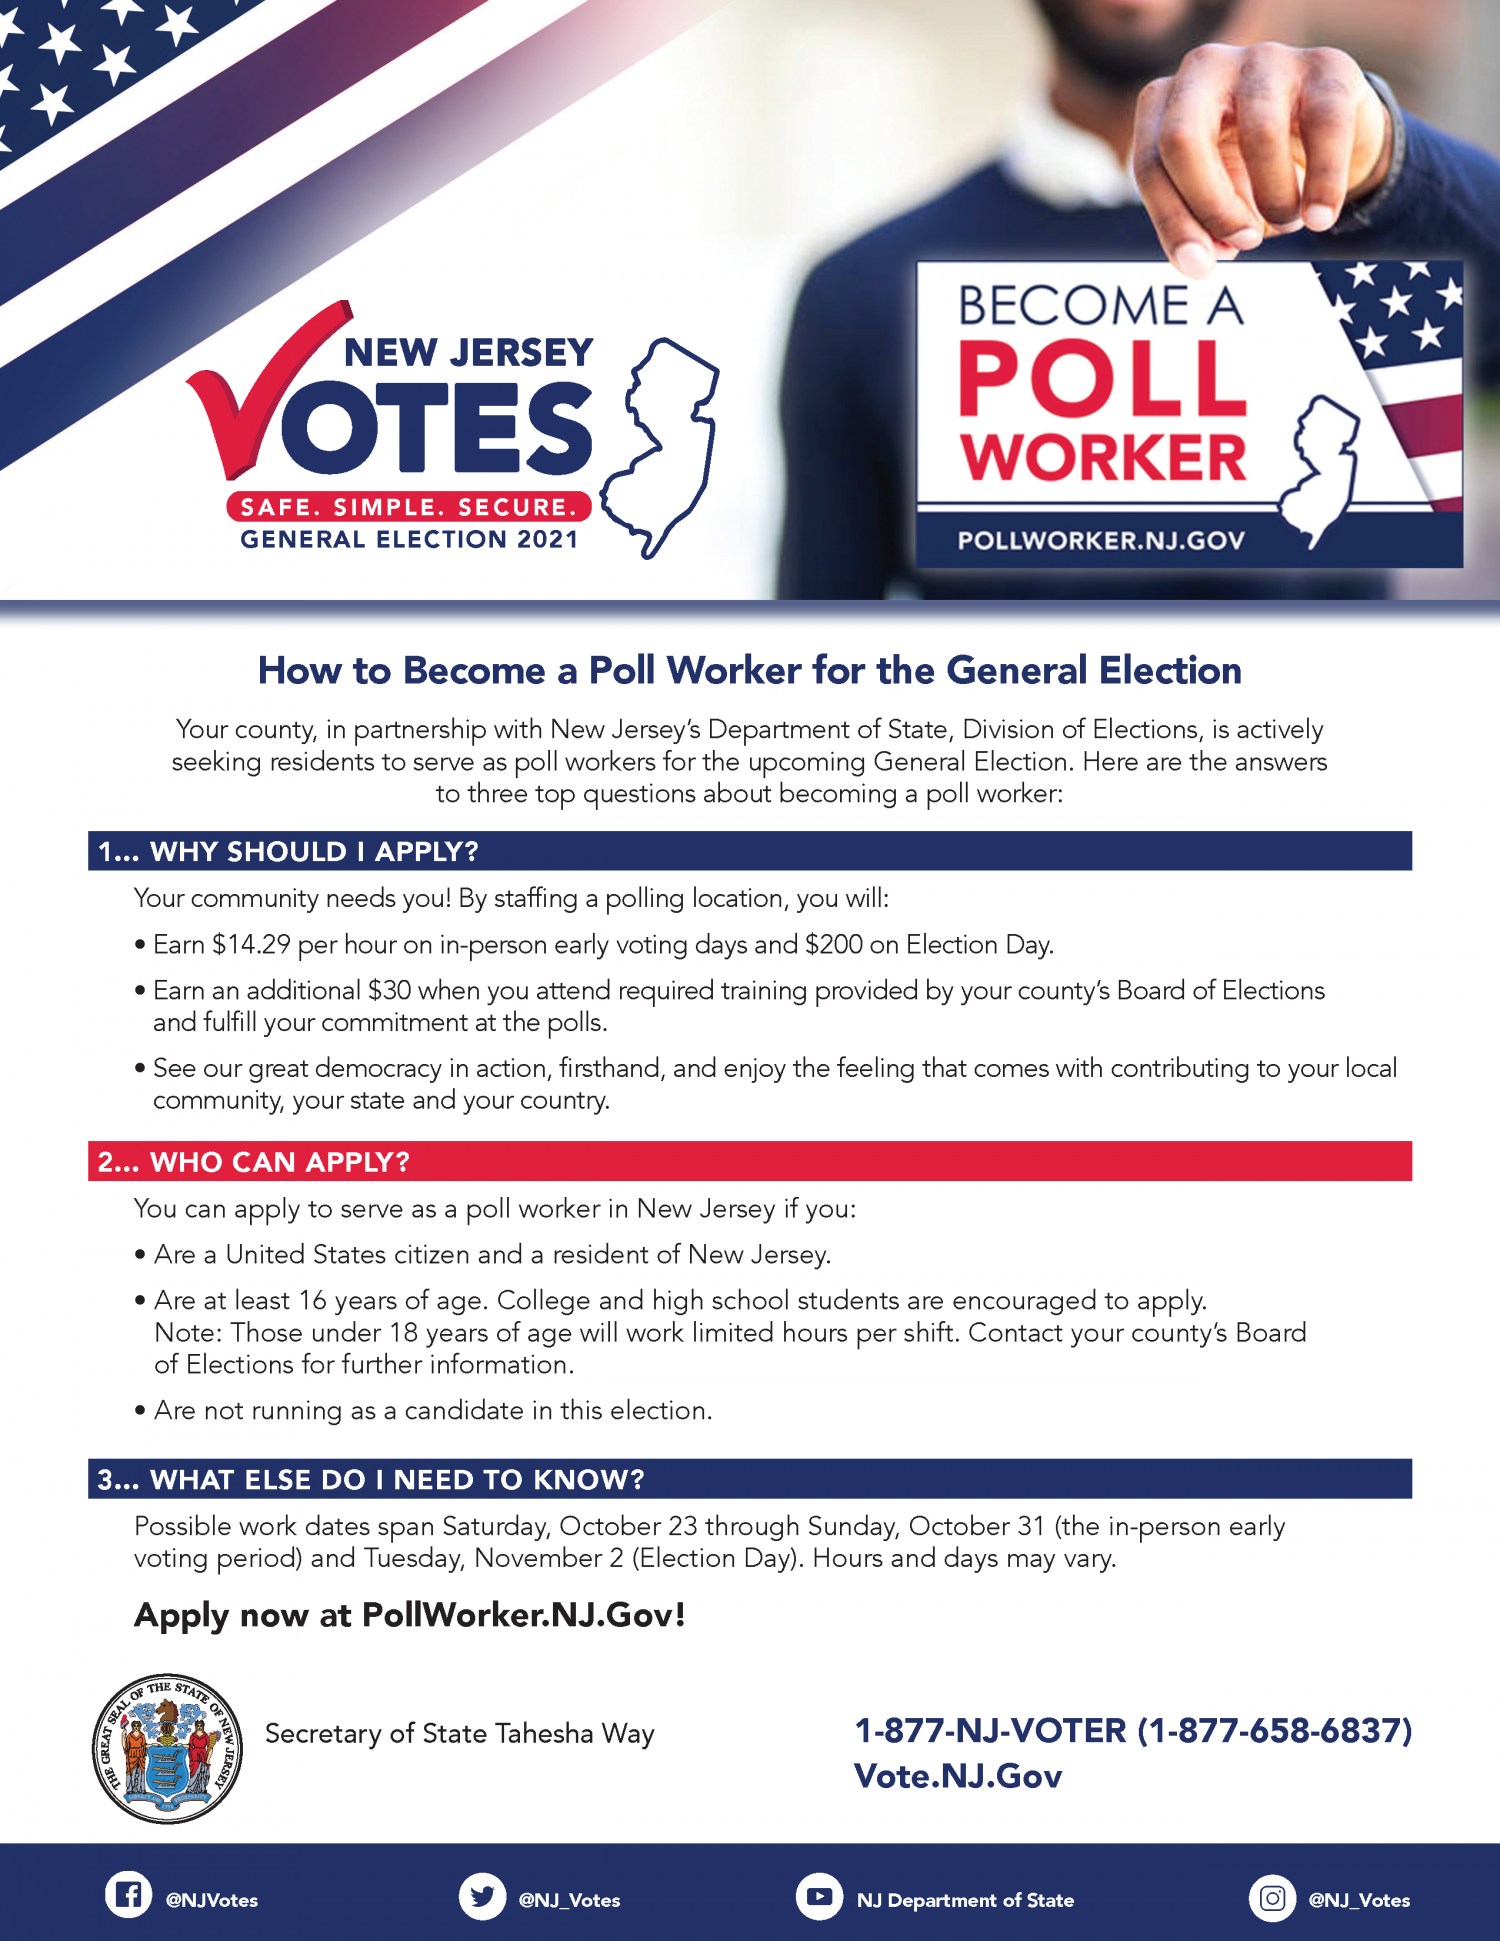 How to become a poll worker. Contact 1-877-658-6837